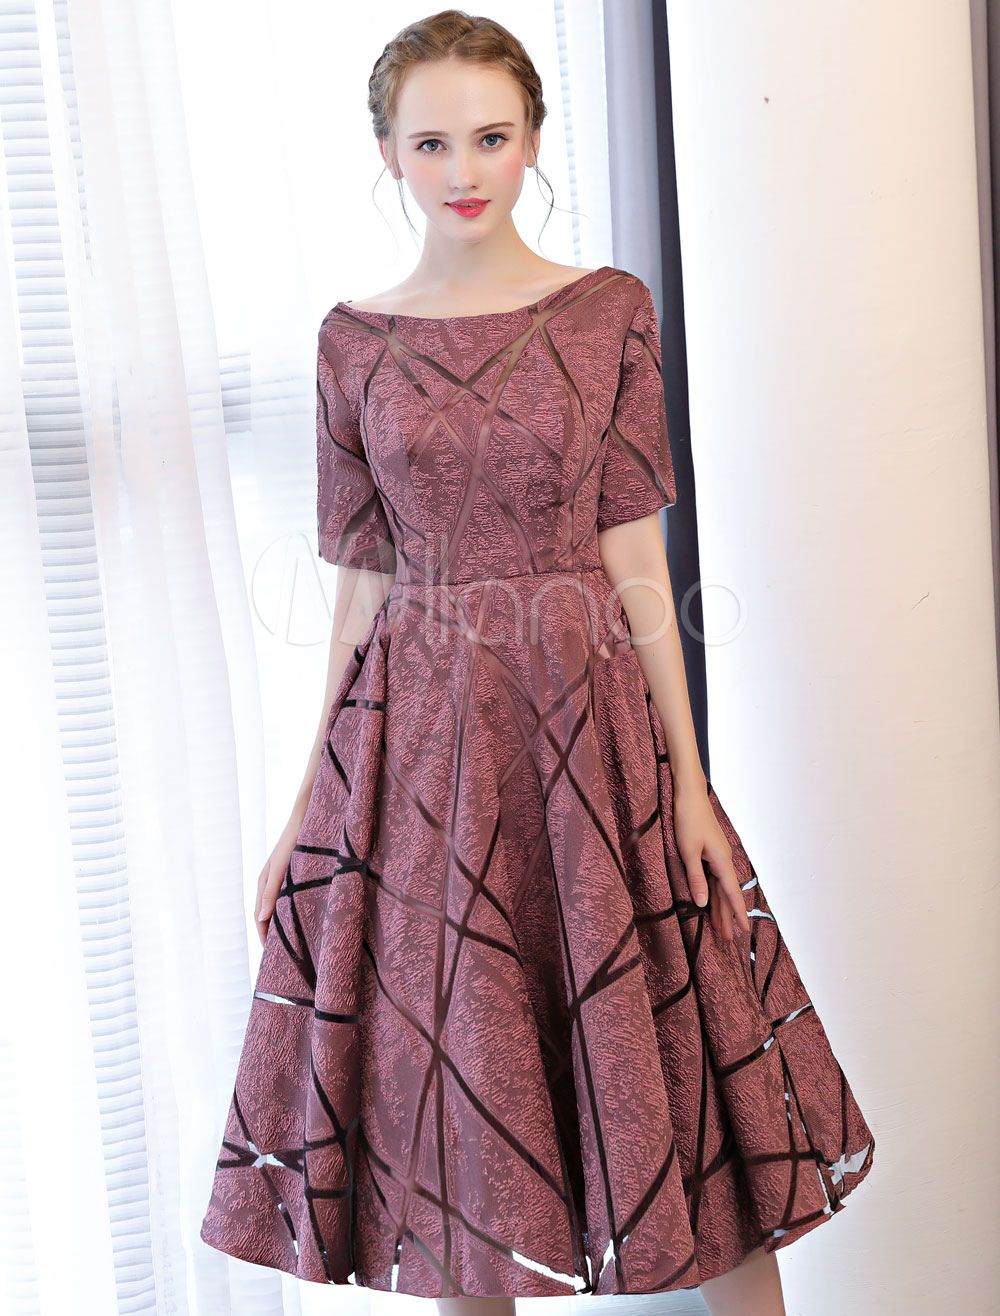 a6589ee7b28 Short Prom Dresses Cameo Pink Half Sleeve Tea Length Cocktail Party Dresses   Cameo